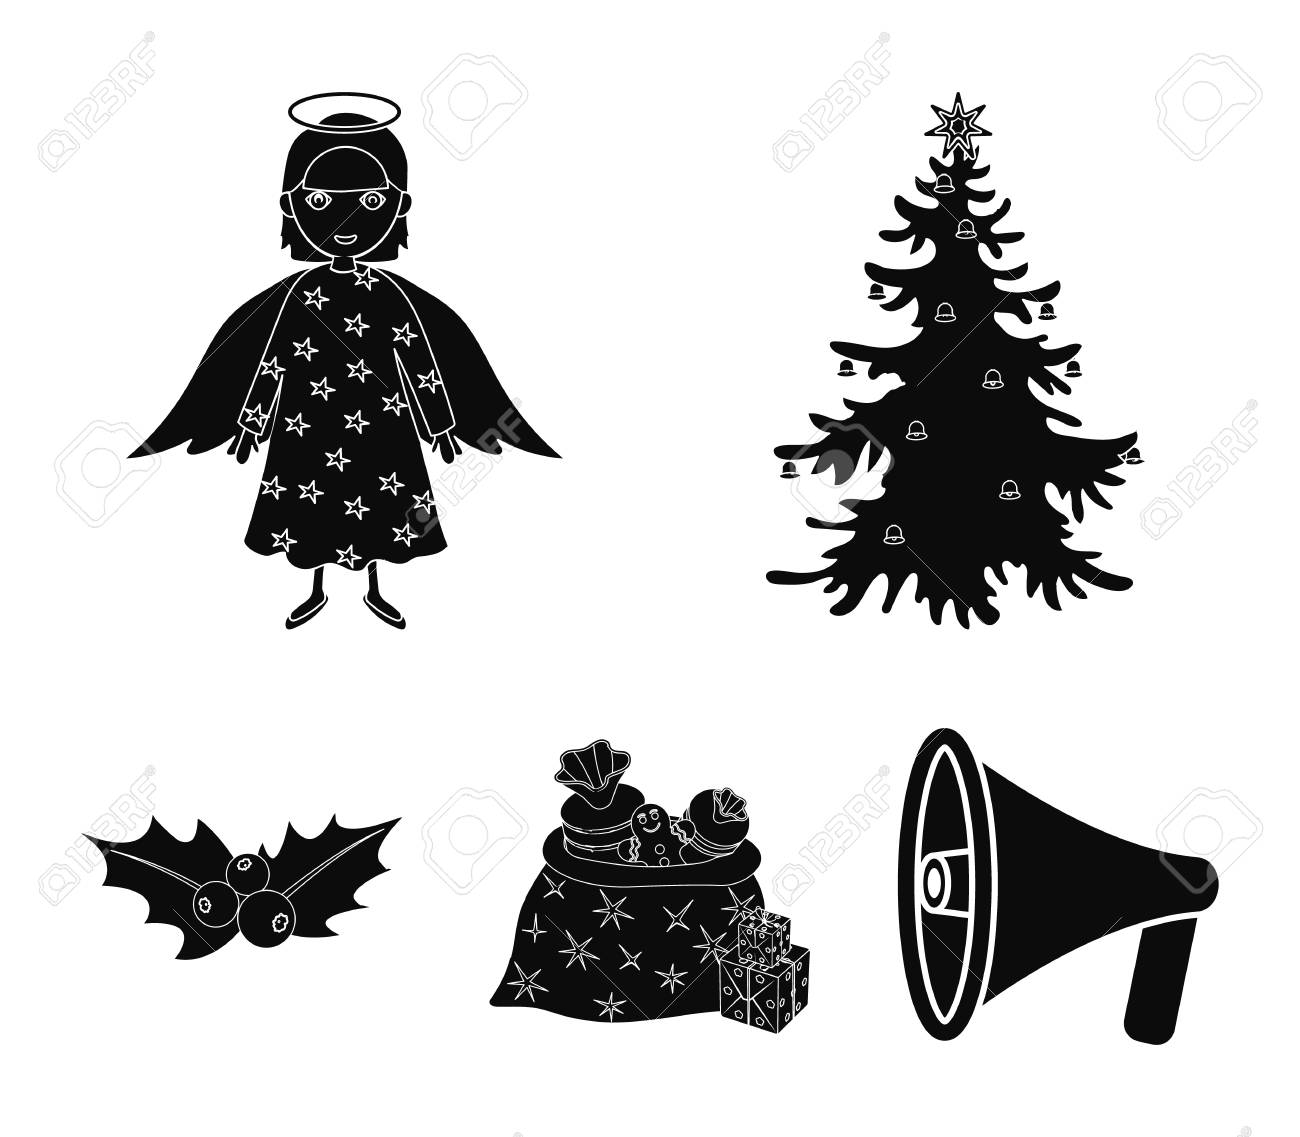 Christmas Tree Angel On Dress With Star Printed Gifts And Holly